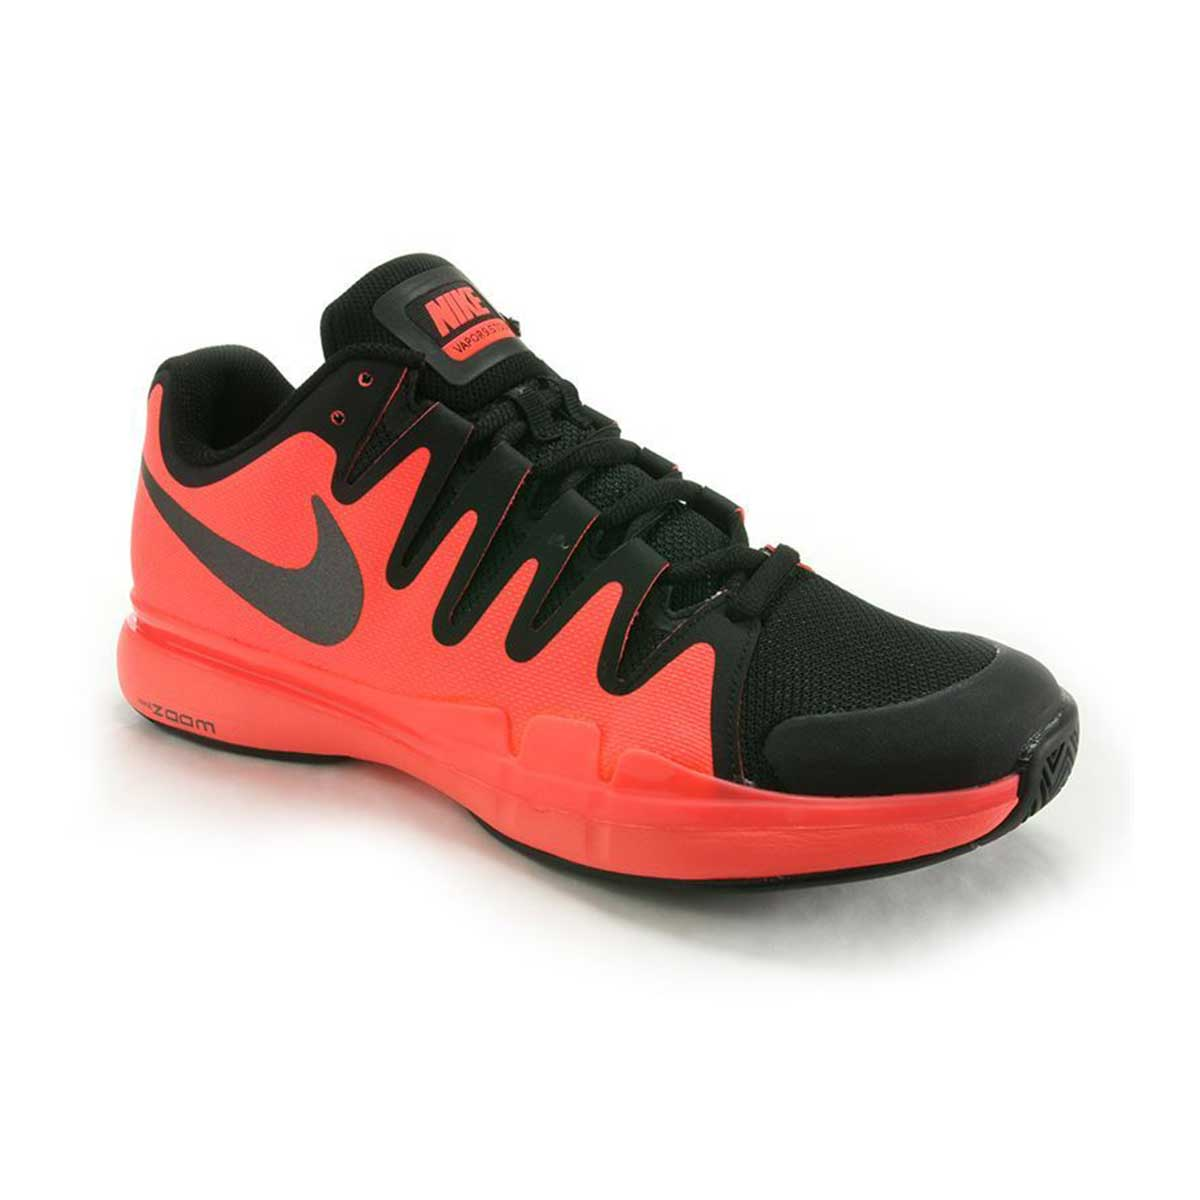 buy nike shoes online india cheap trip